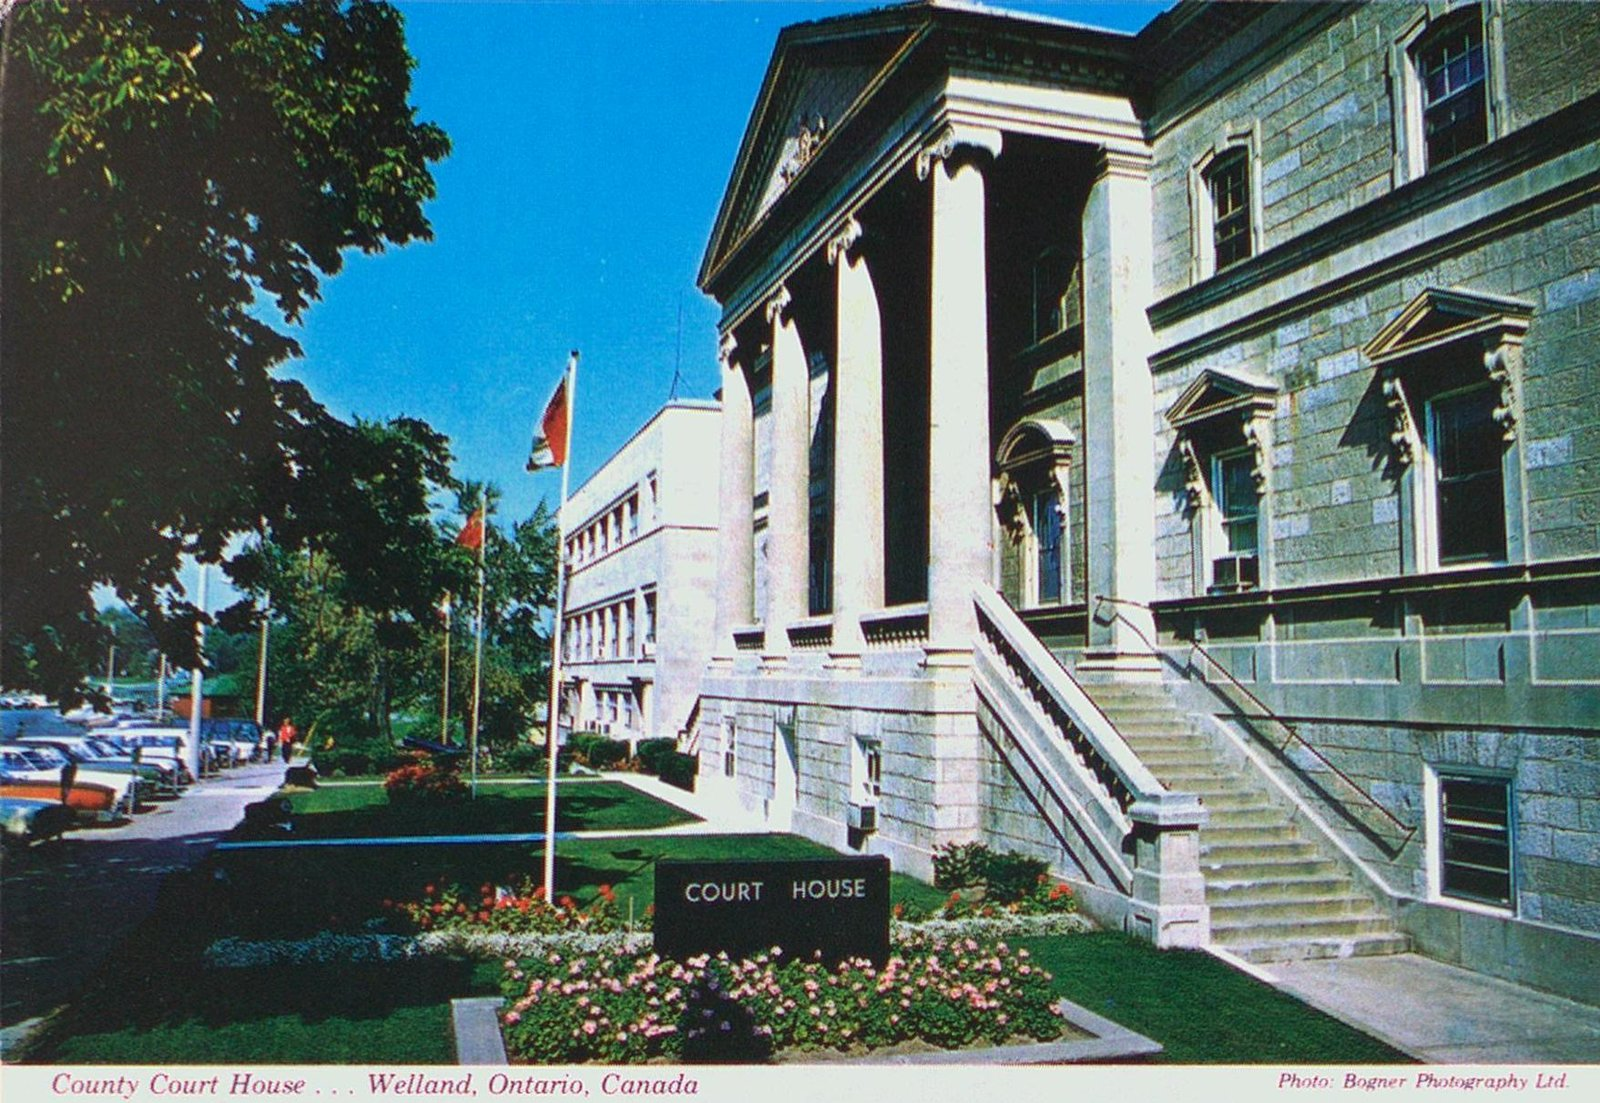 County Court House, Welland